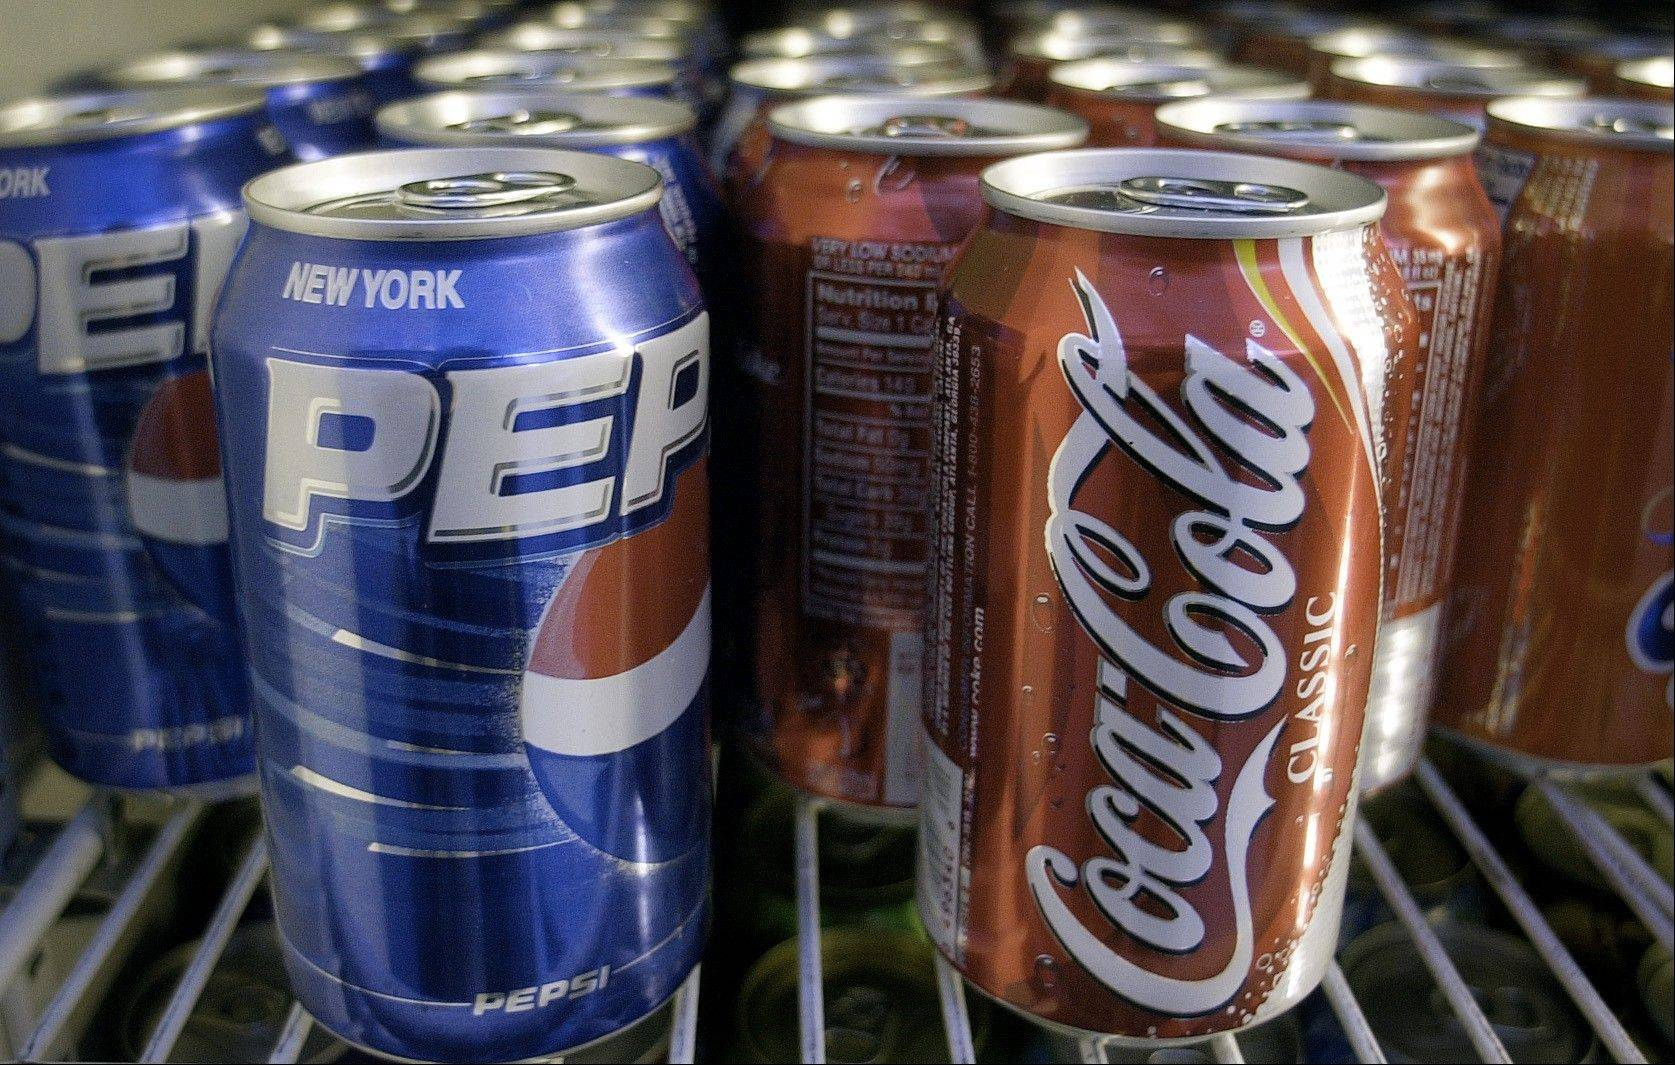 Americans� consumption of fizzy soft drinks, on the decline since 2005, fell last year to its lowest level since 1996.